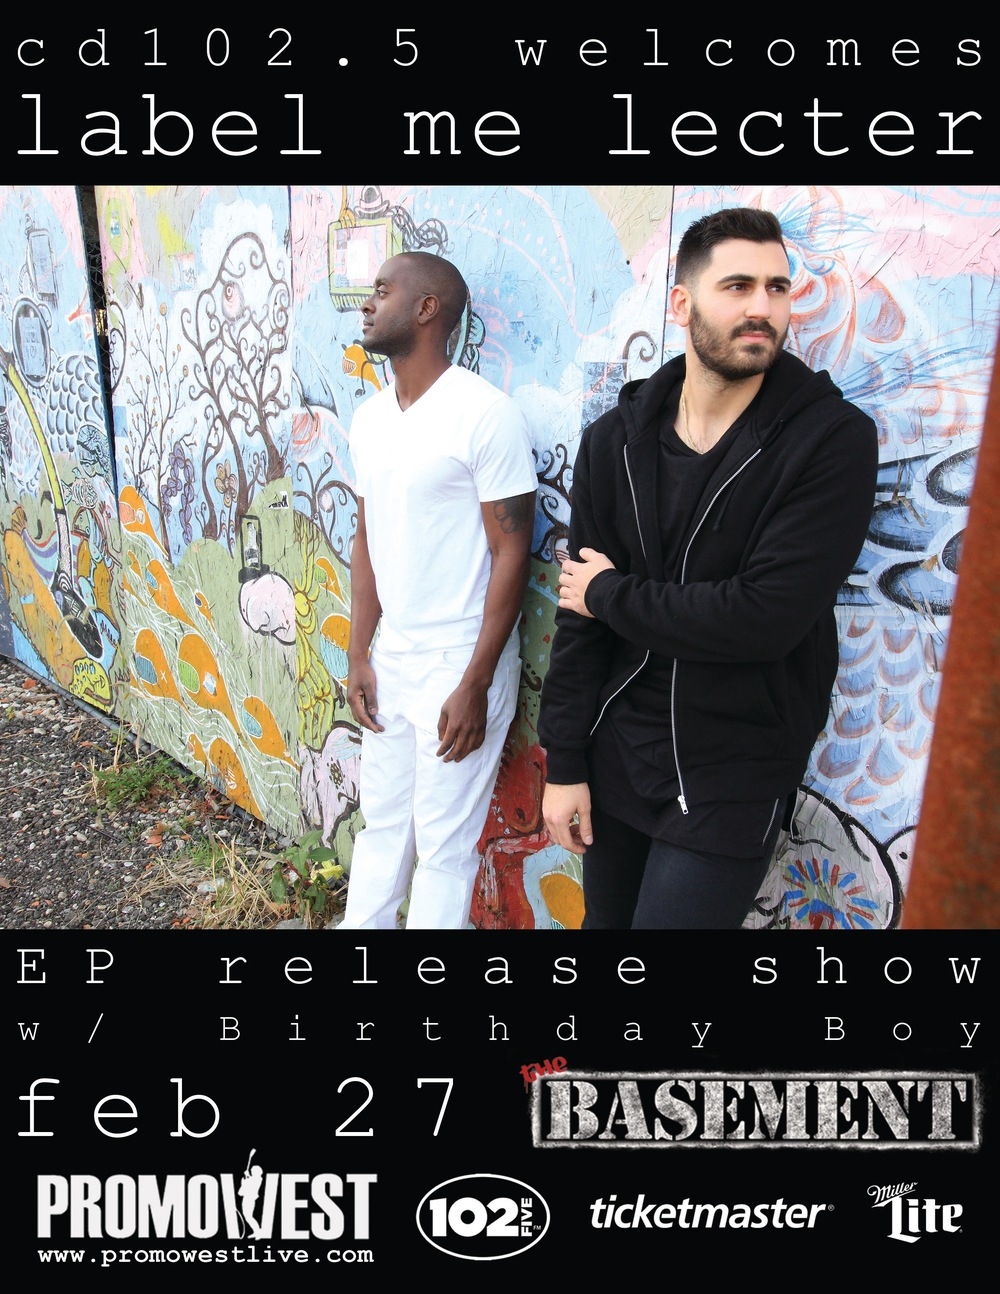 "it's official. saturday, february 27th, label me lecter will be hosting their EP release party live at The Basement and EVERYONE is invited. it's about to ""GO!"" down. tickets are $5 pre-sale // $7 at the door. BE THERE. #SirensAndSilenceEP #CD1025   for tickets and more information, visit  http://promowestlive.com/events/1471"